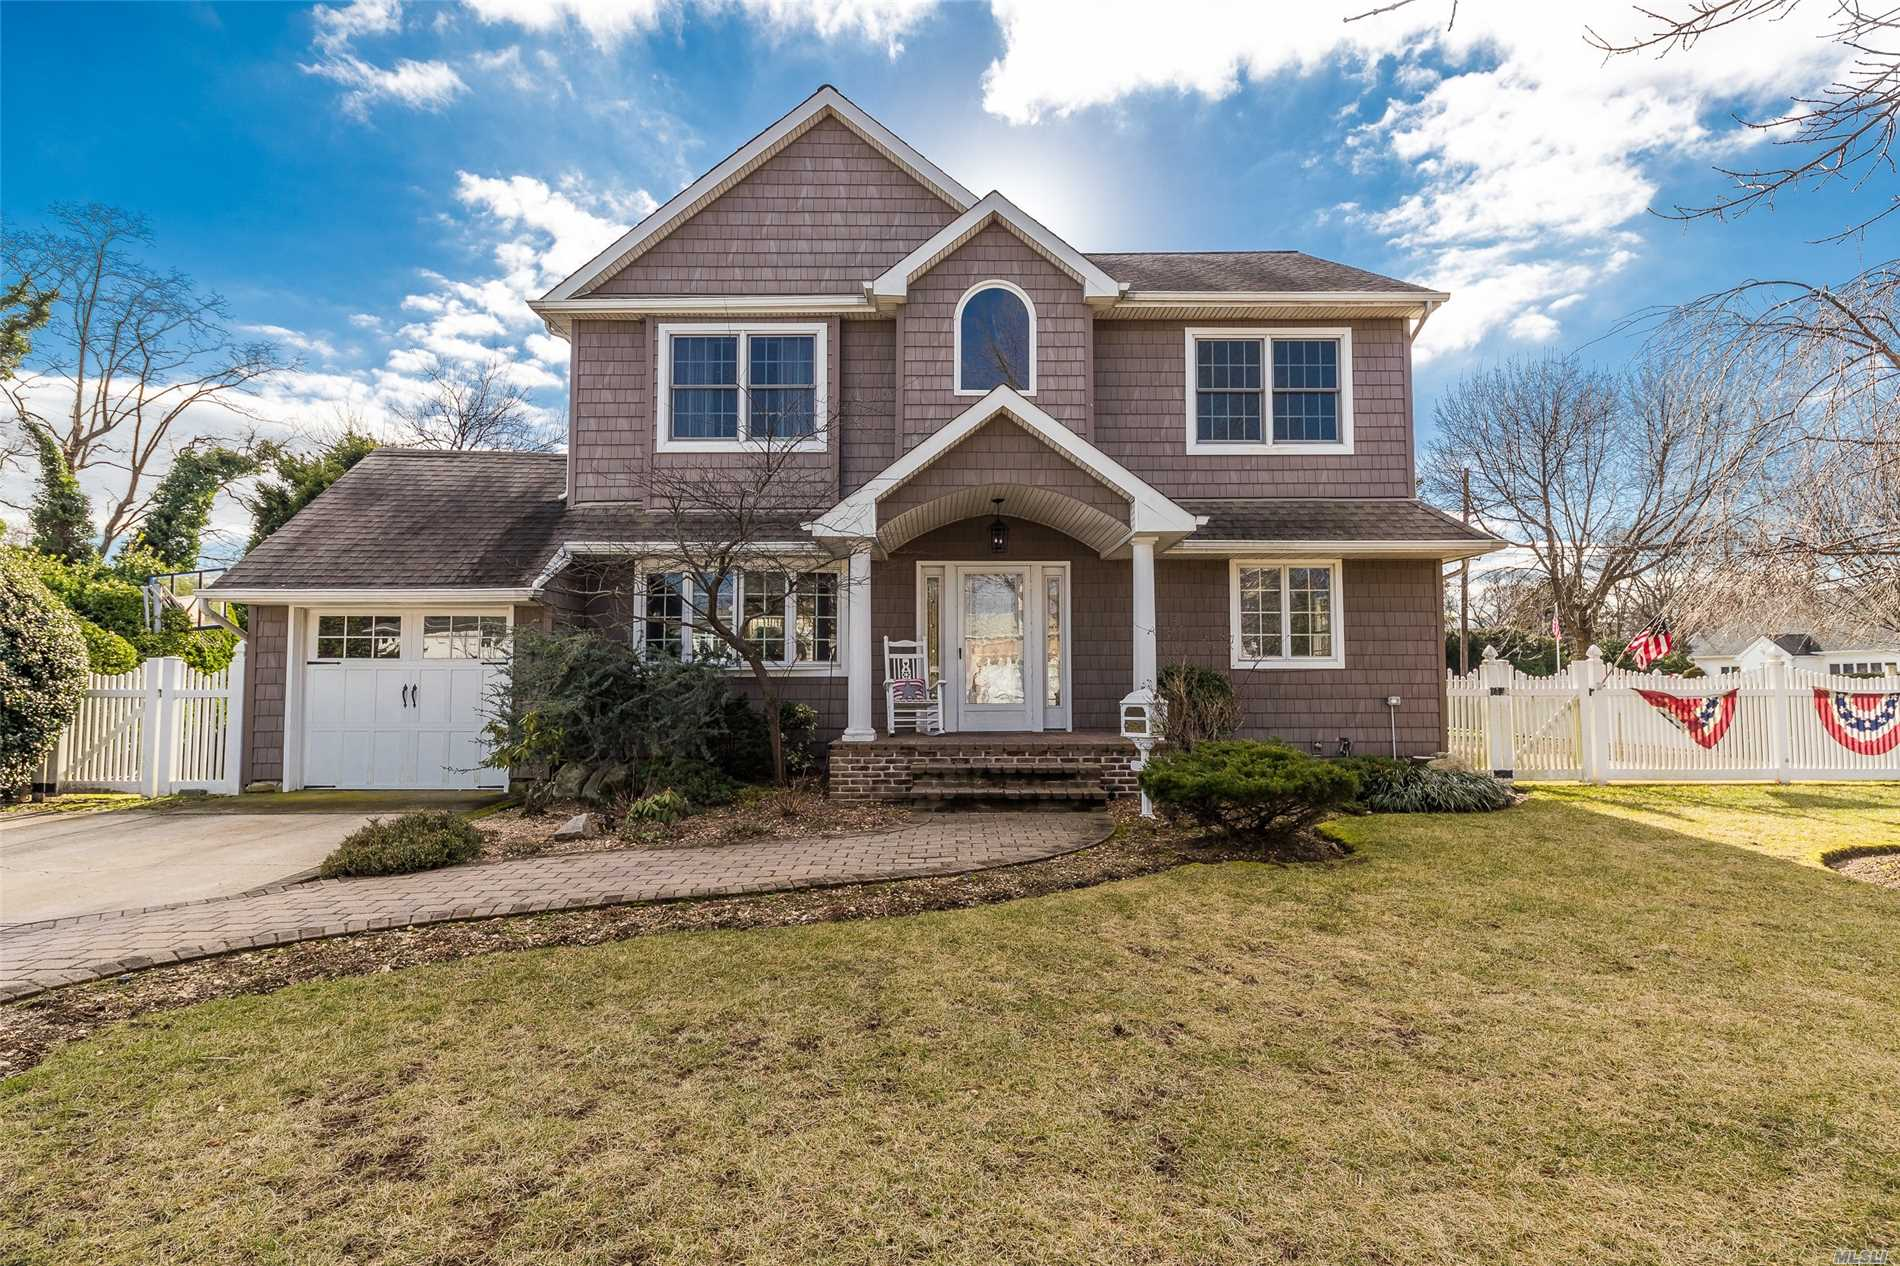 Spacious Center Hall Colonial On 100X100 Corner Lot In Massapequa Sd. Grand Entry Foyer With Soaring Tray Ceilings, Fireplace, Multiple Family Rooms, Eat In Kitchen, And An Abundance Of Natural Light Year Round! 1 Br Downstairs, 4 Br's Up, Serene Backyard With Endless Possibilities.